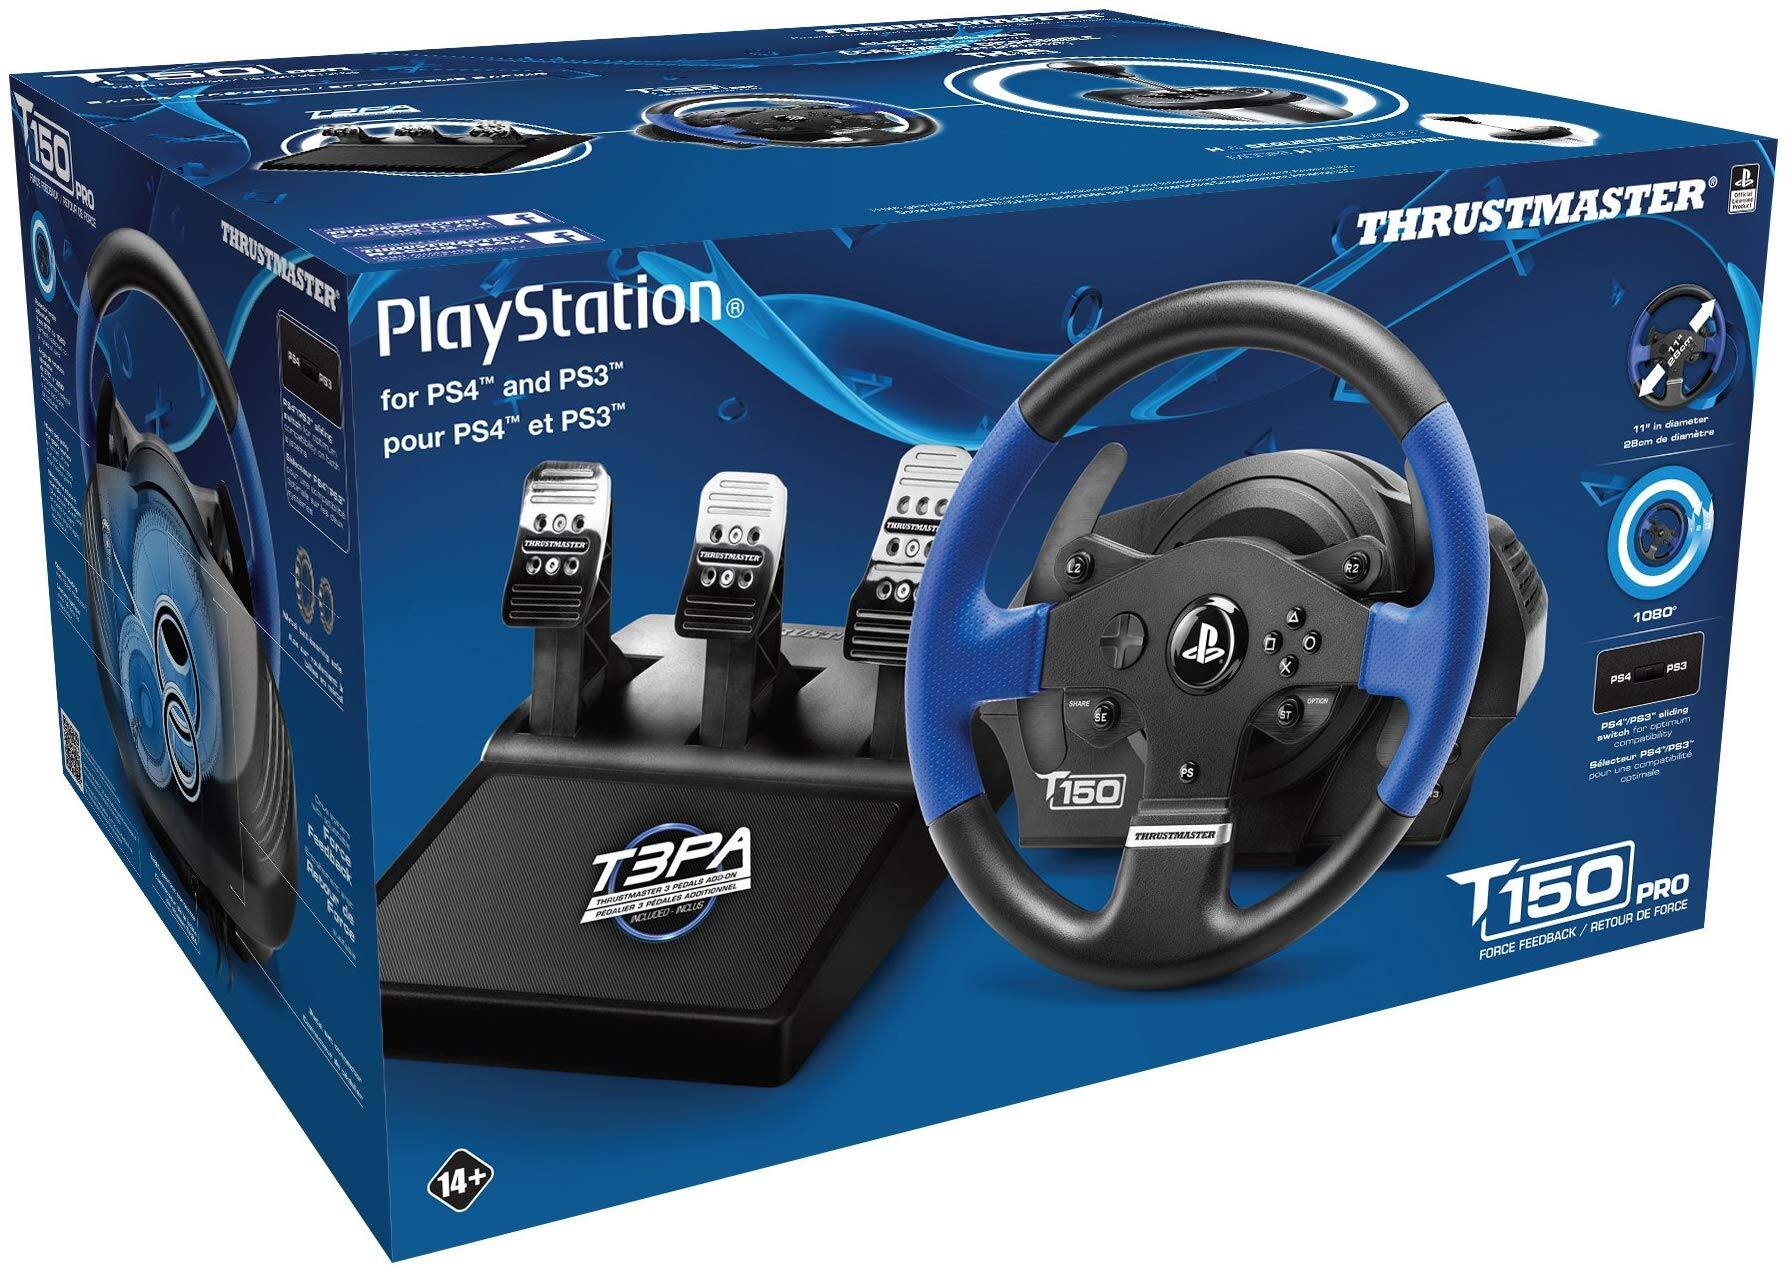 Thrustmaster T150 RS Pro Racing Wheel w/3 Pedal Set T3PA [PS4/PS3/PC] - $154.99 + Free Shipping